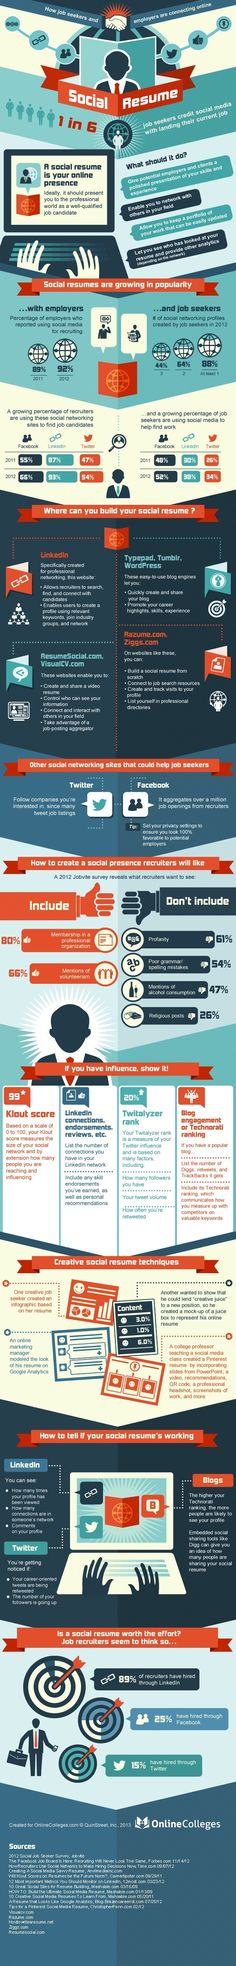 How Social Media Could Land You Your Next Job [INFOGRAPHIC]